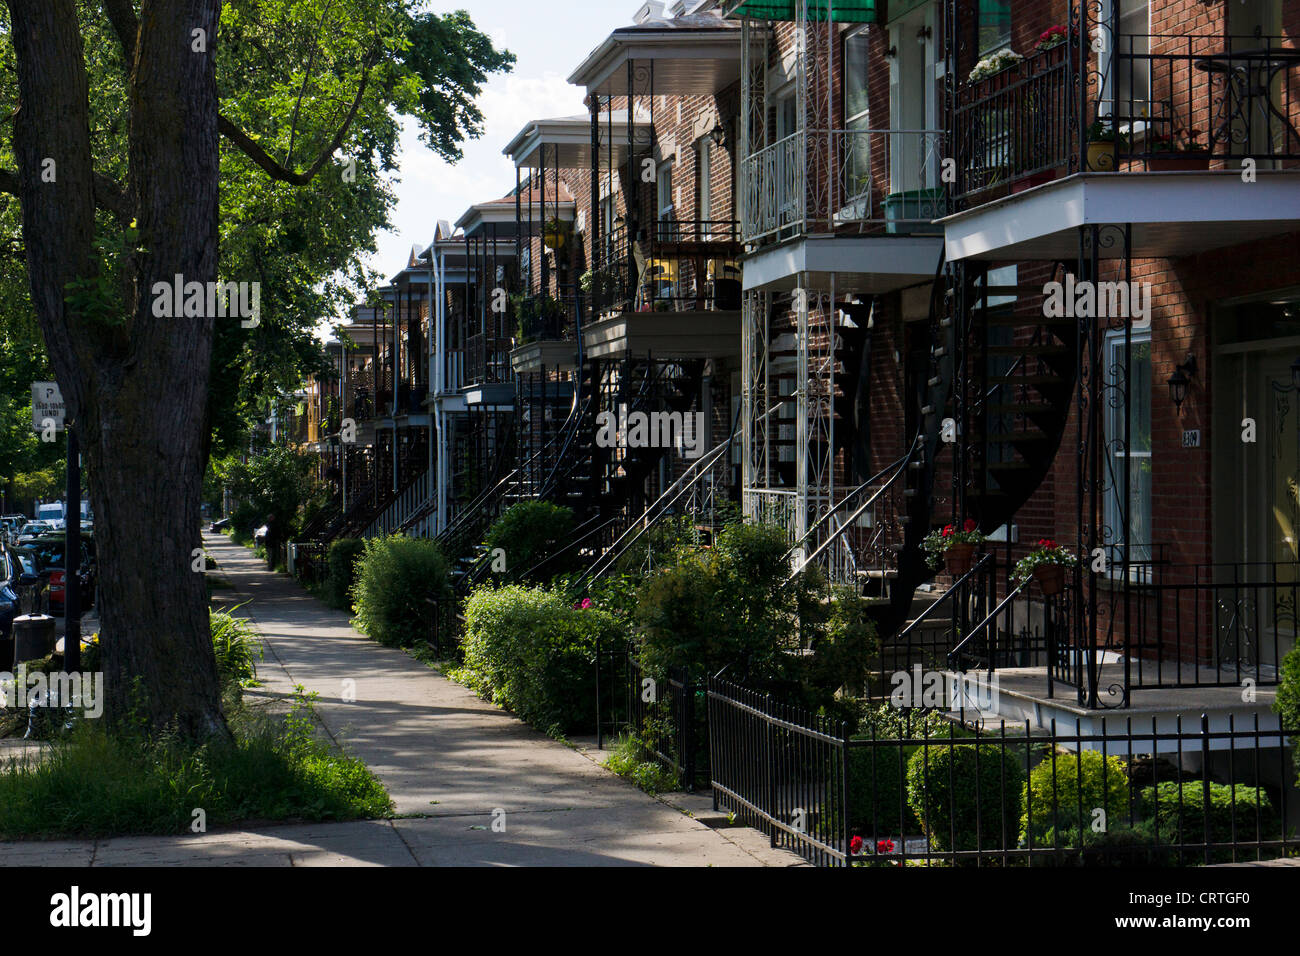 Typical iron outdoor staircases and balconies, Montreal, Quebec, Canada. - Stock Image